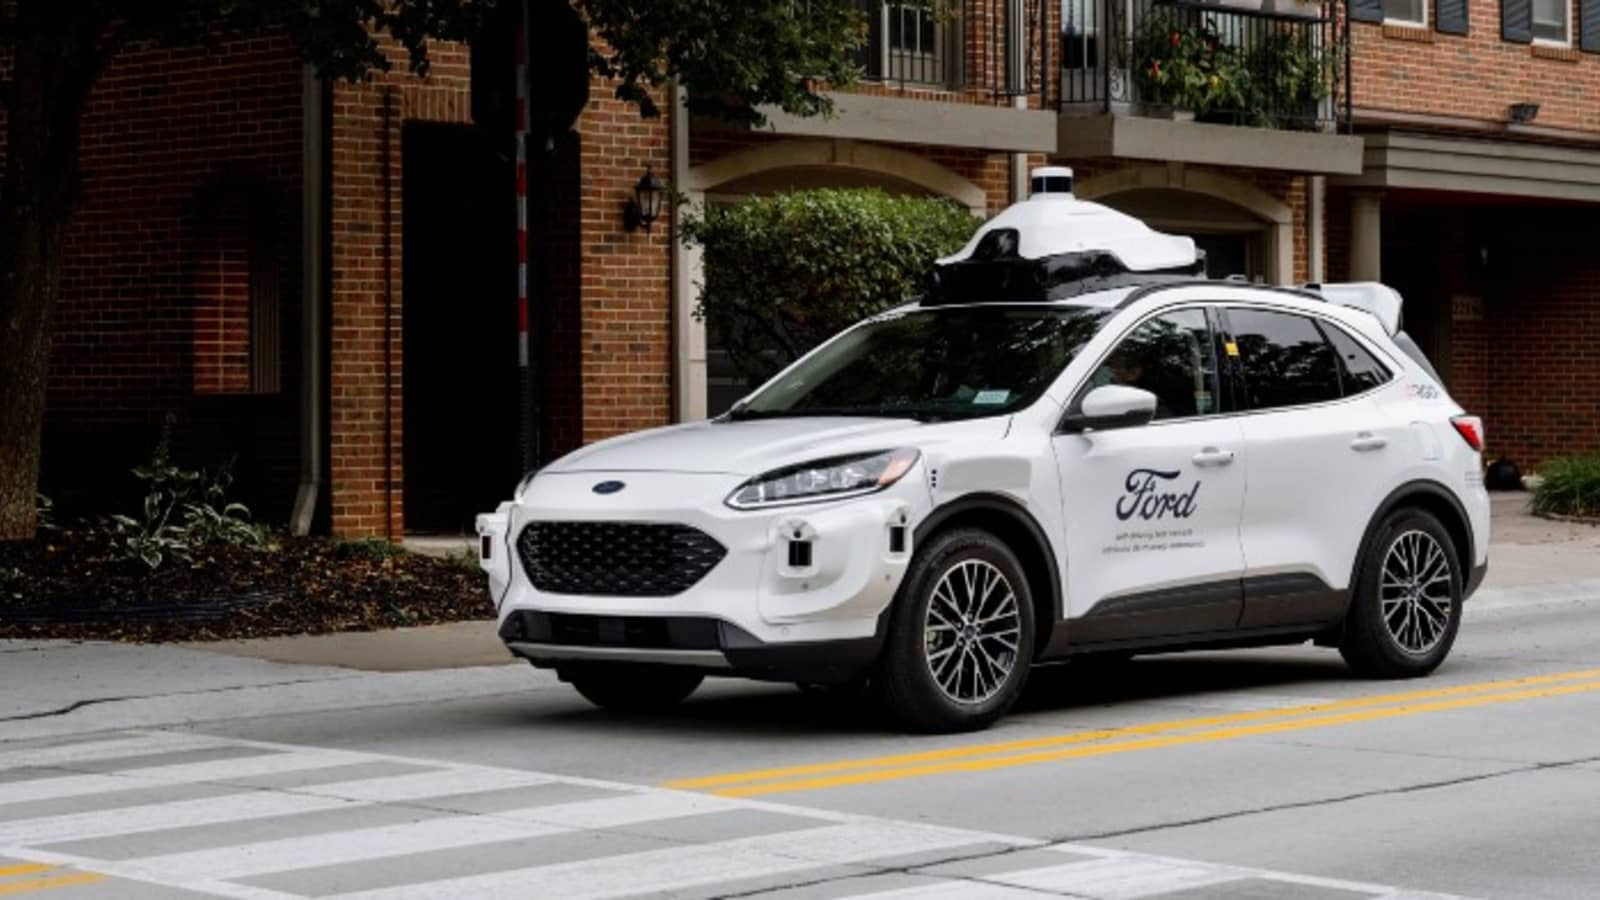 Walmart to test self-driving cars in multiple cities with Ford and Argo AI